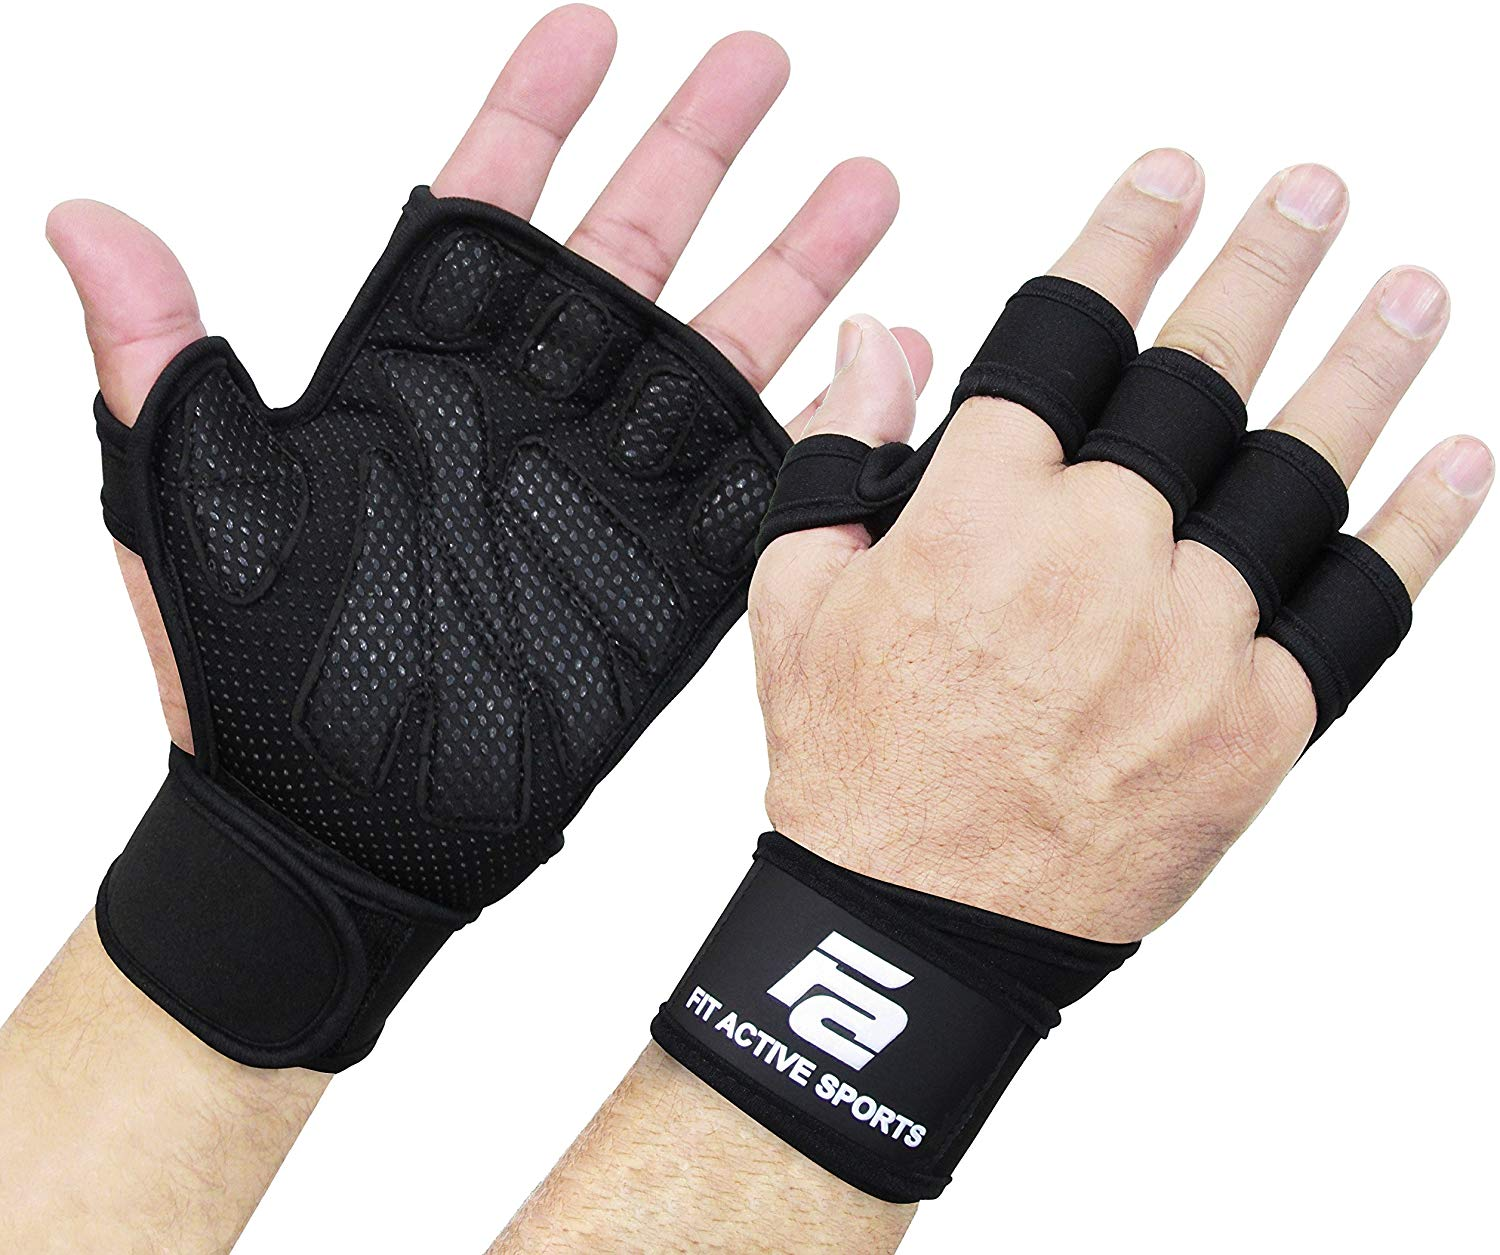 Fit active weightlifting gloves